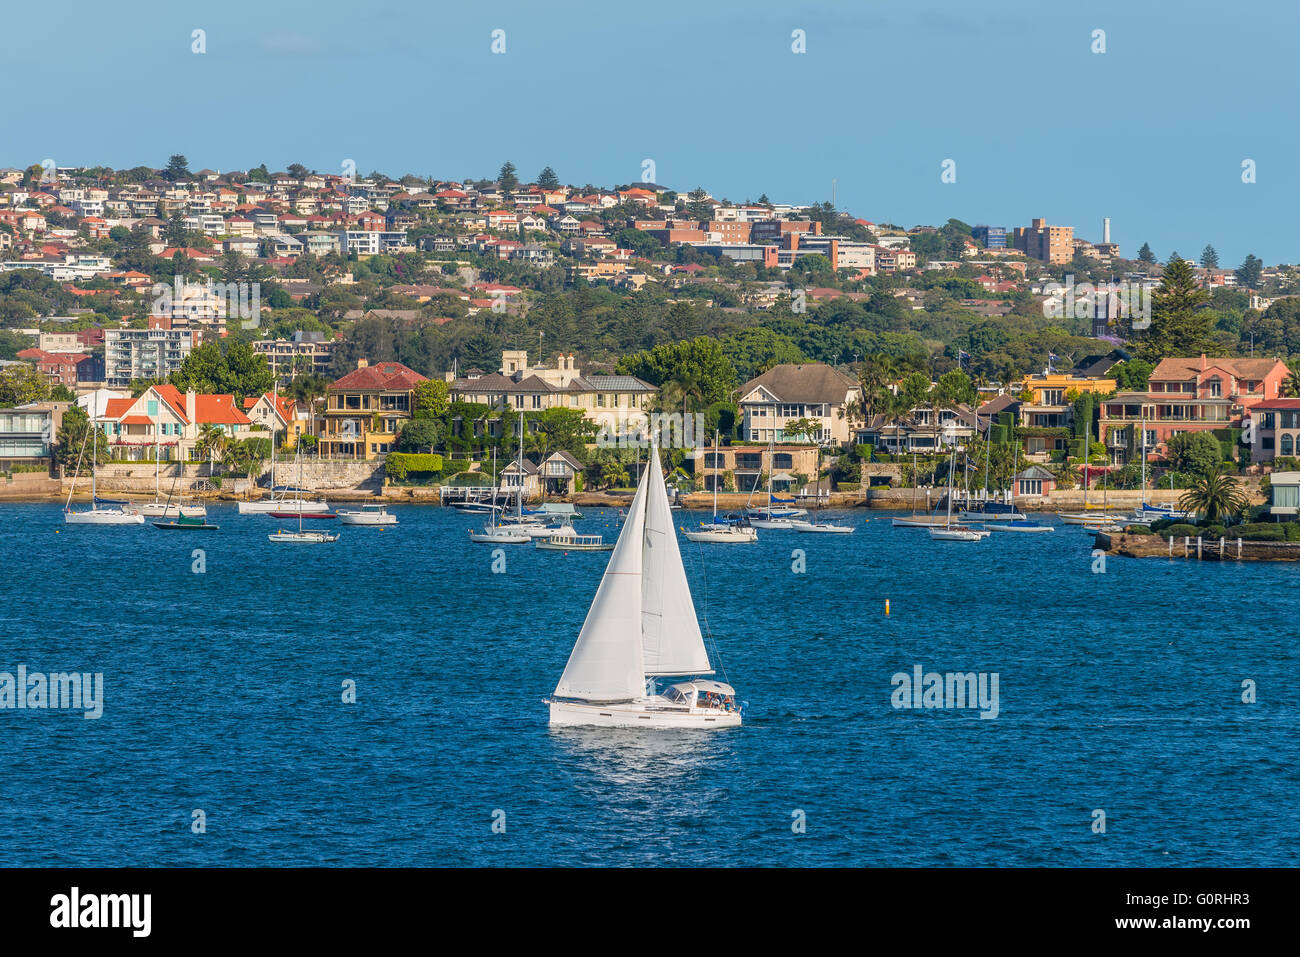 Sailing boats and residential housing in Rose Bay, Sydney, New South Wales, Australia - Stock Image